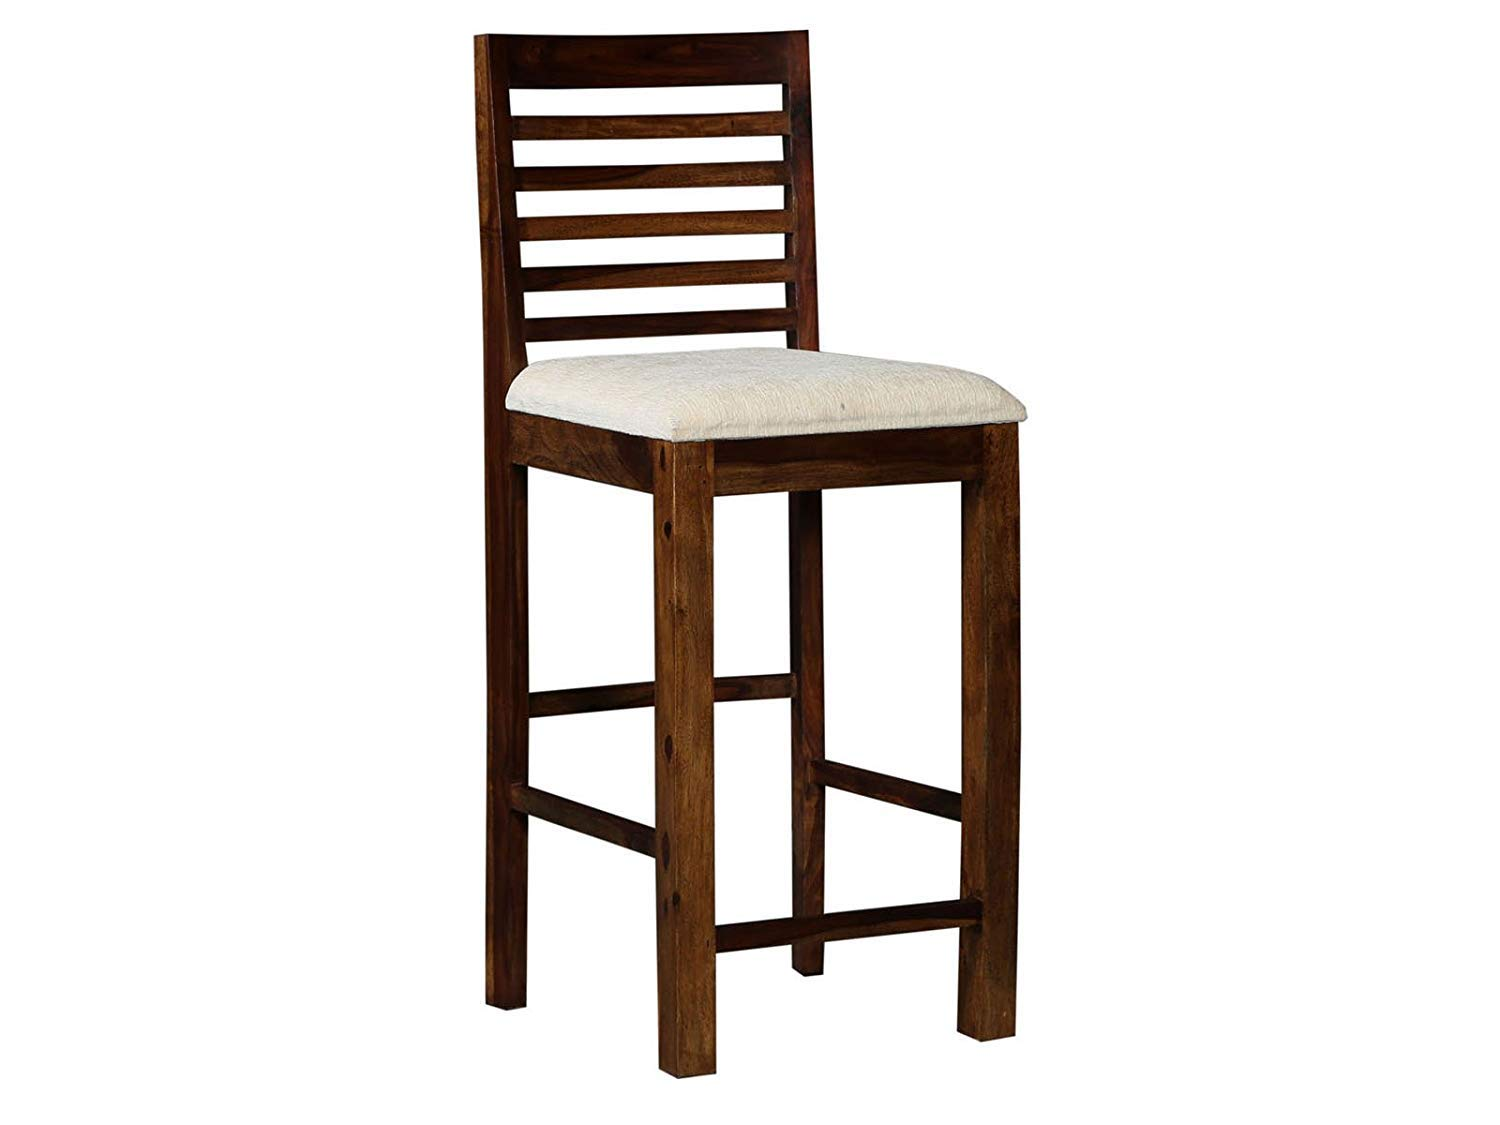 Kobin Bar Chair for Home Long Wooden Chair  Bar Chair High with White Cushion Walnut Brown Finish